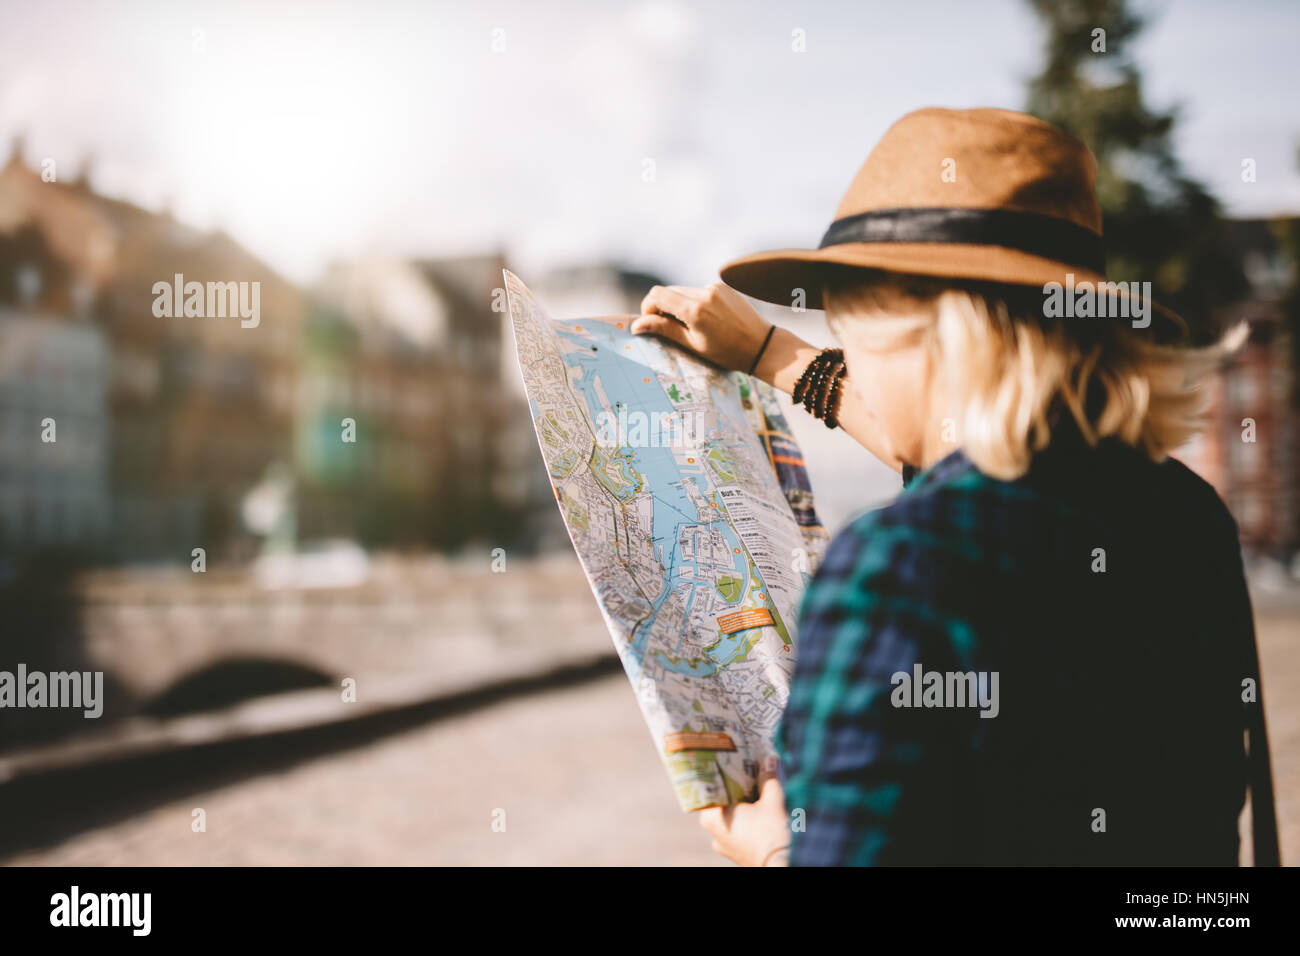 Side view of young woman wearing hat looking at a city map. Tourist looking for navigation route on map. - Stock Image